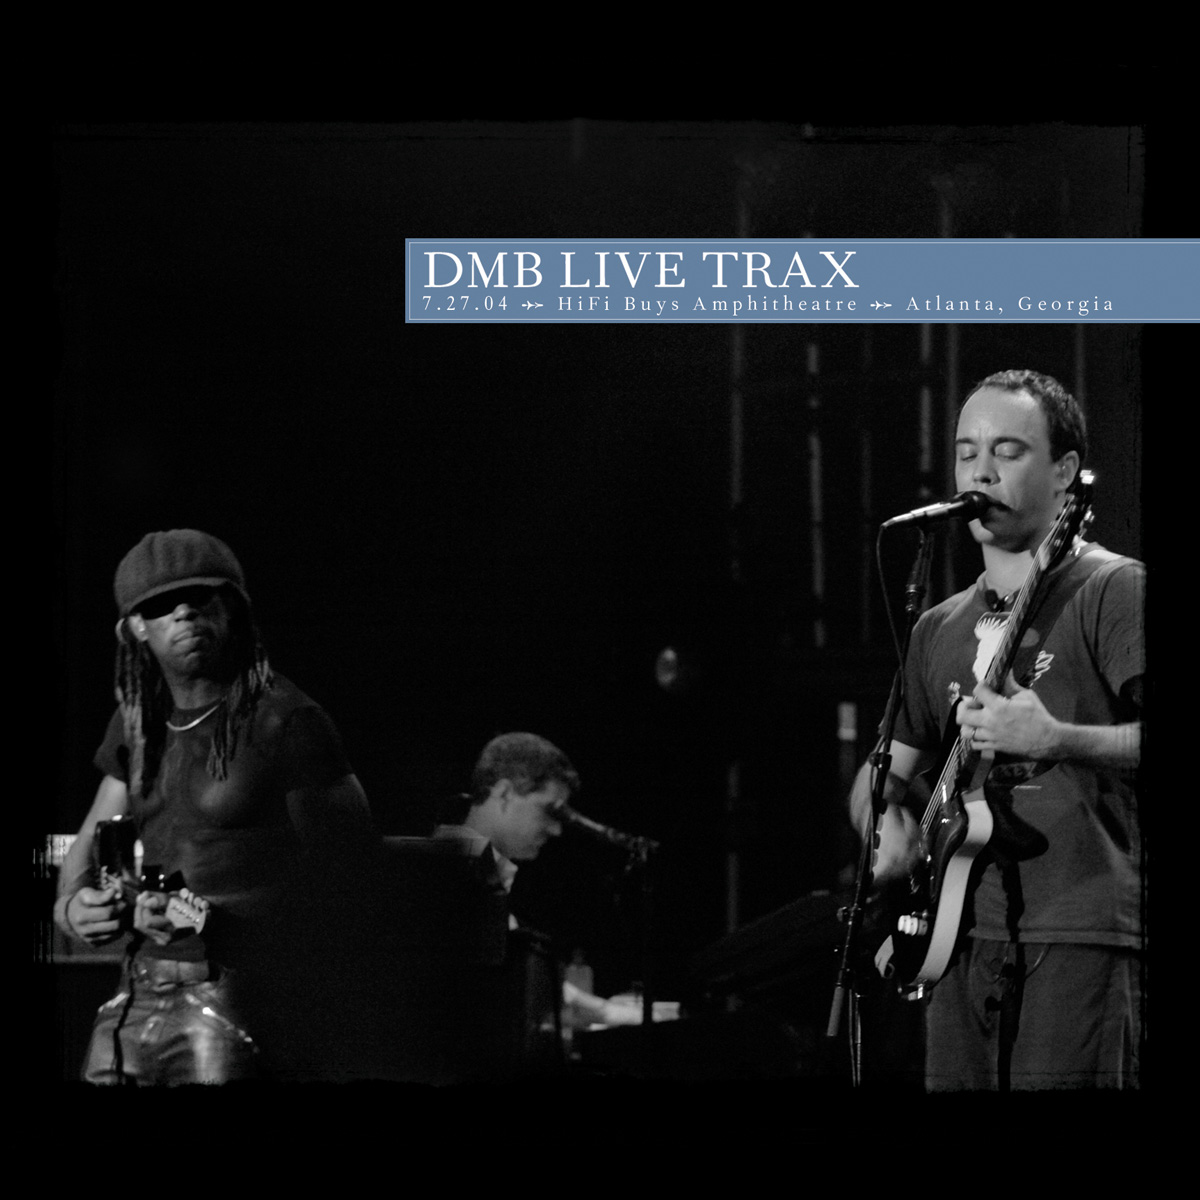 Hifi Shop 24 Dmb Live Trax Vol 43 Hifi Buys Amphitheatre Shop The Dave